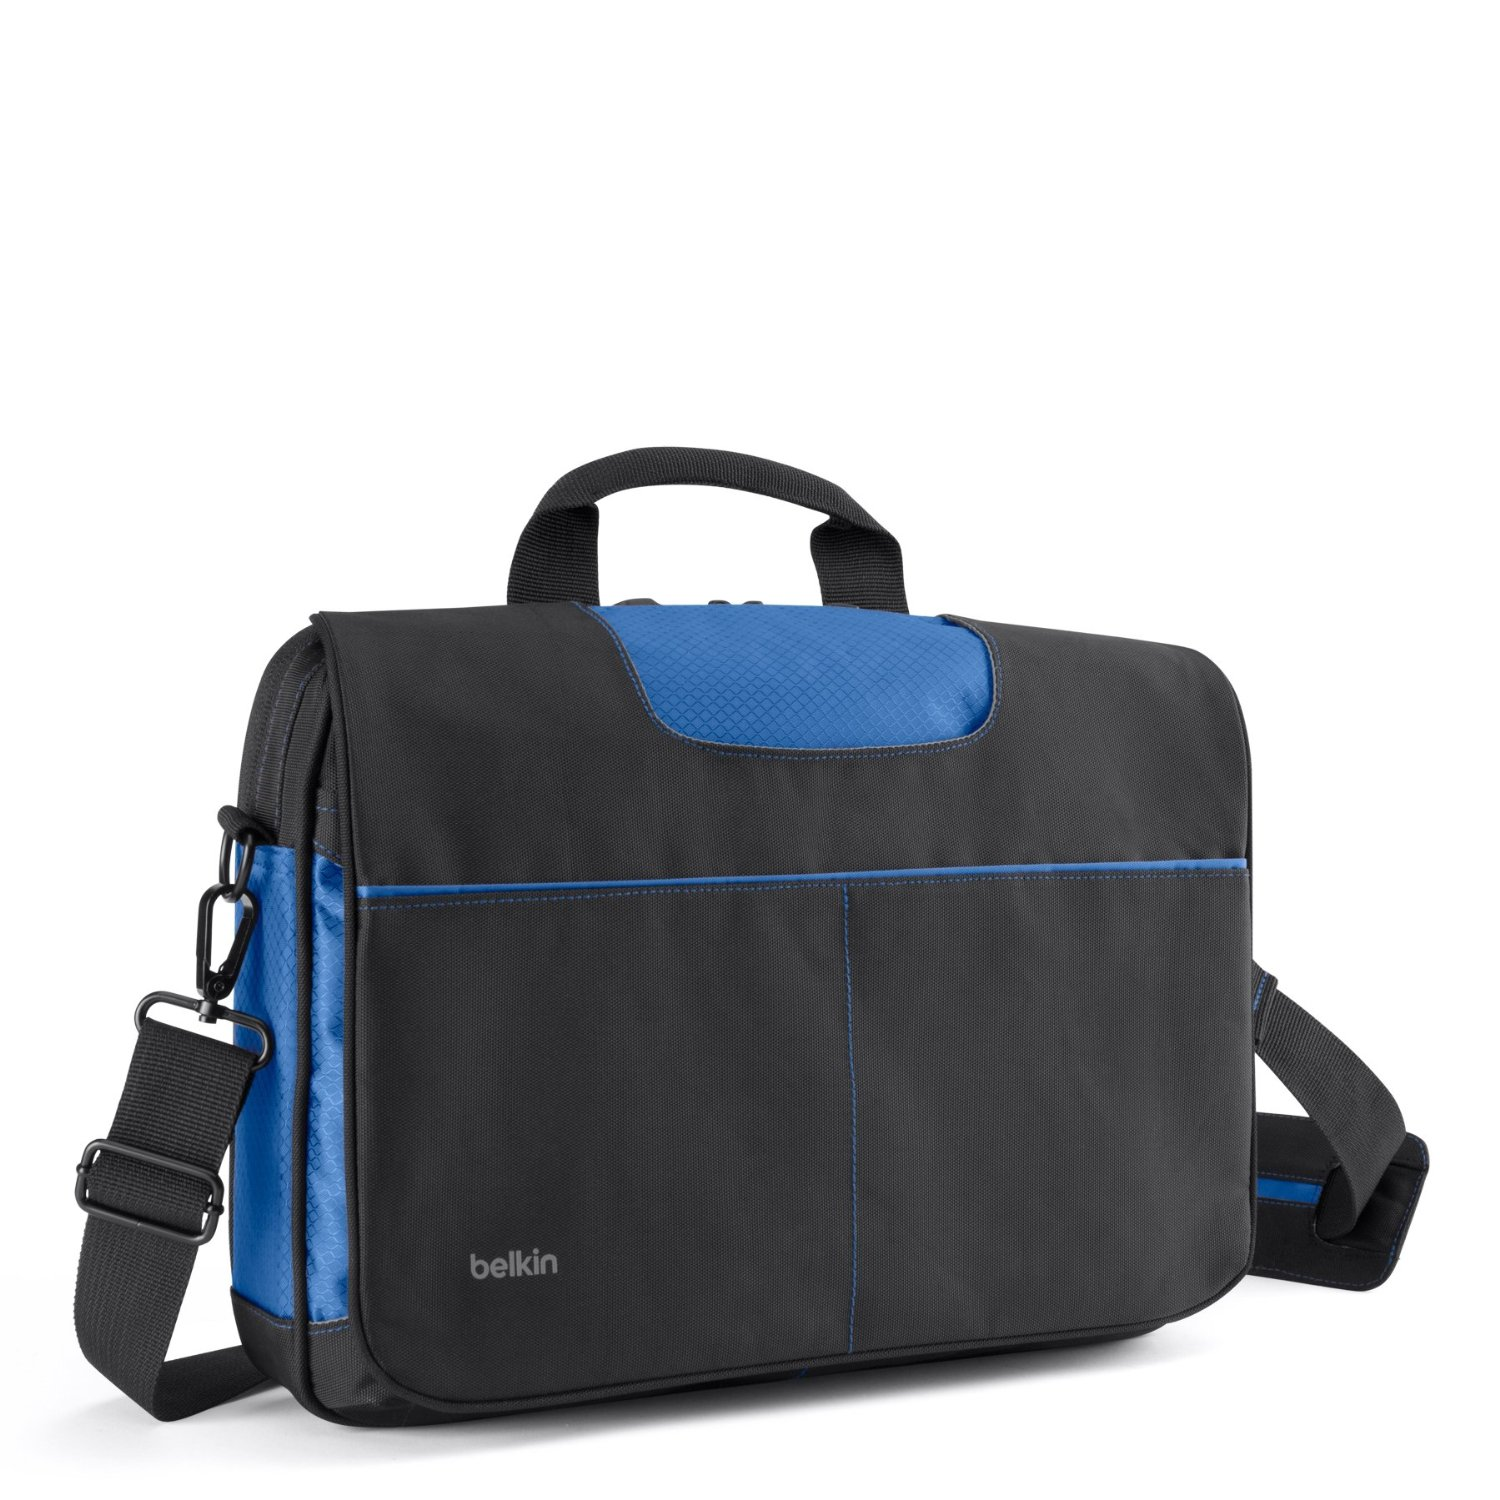 BELKIN Brašna 13'' Messenger Bag - Black/Blue